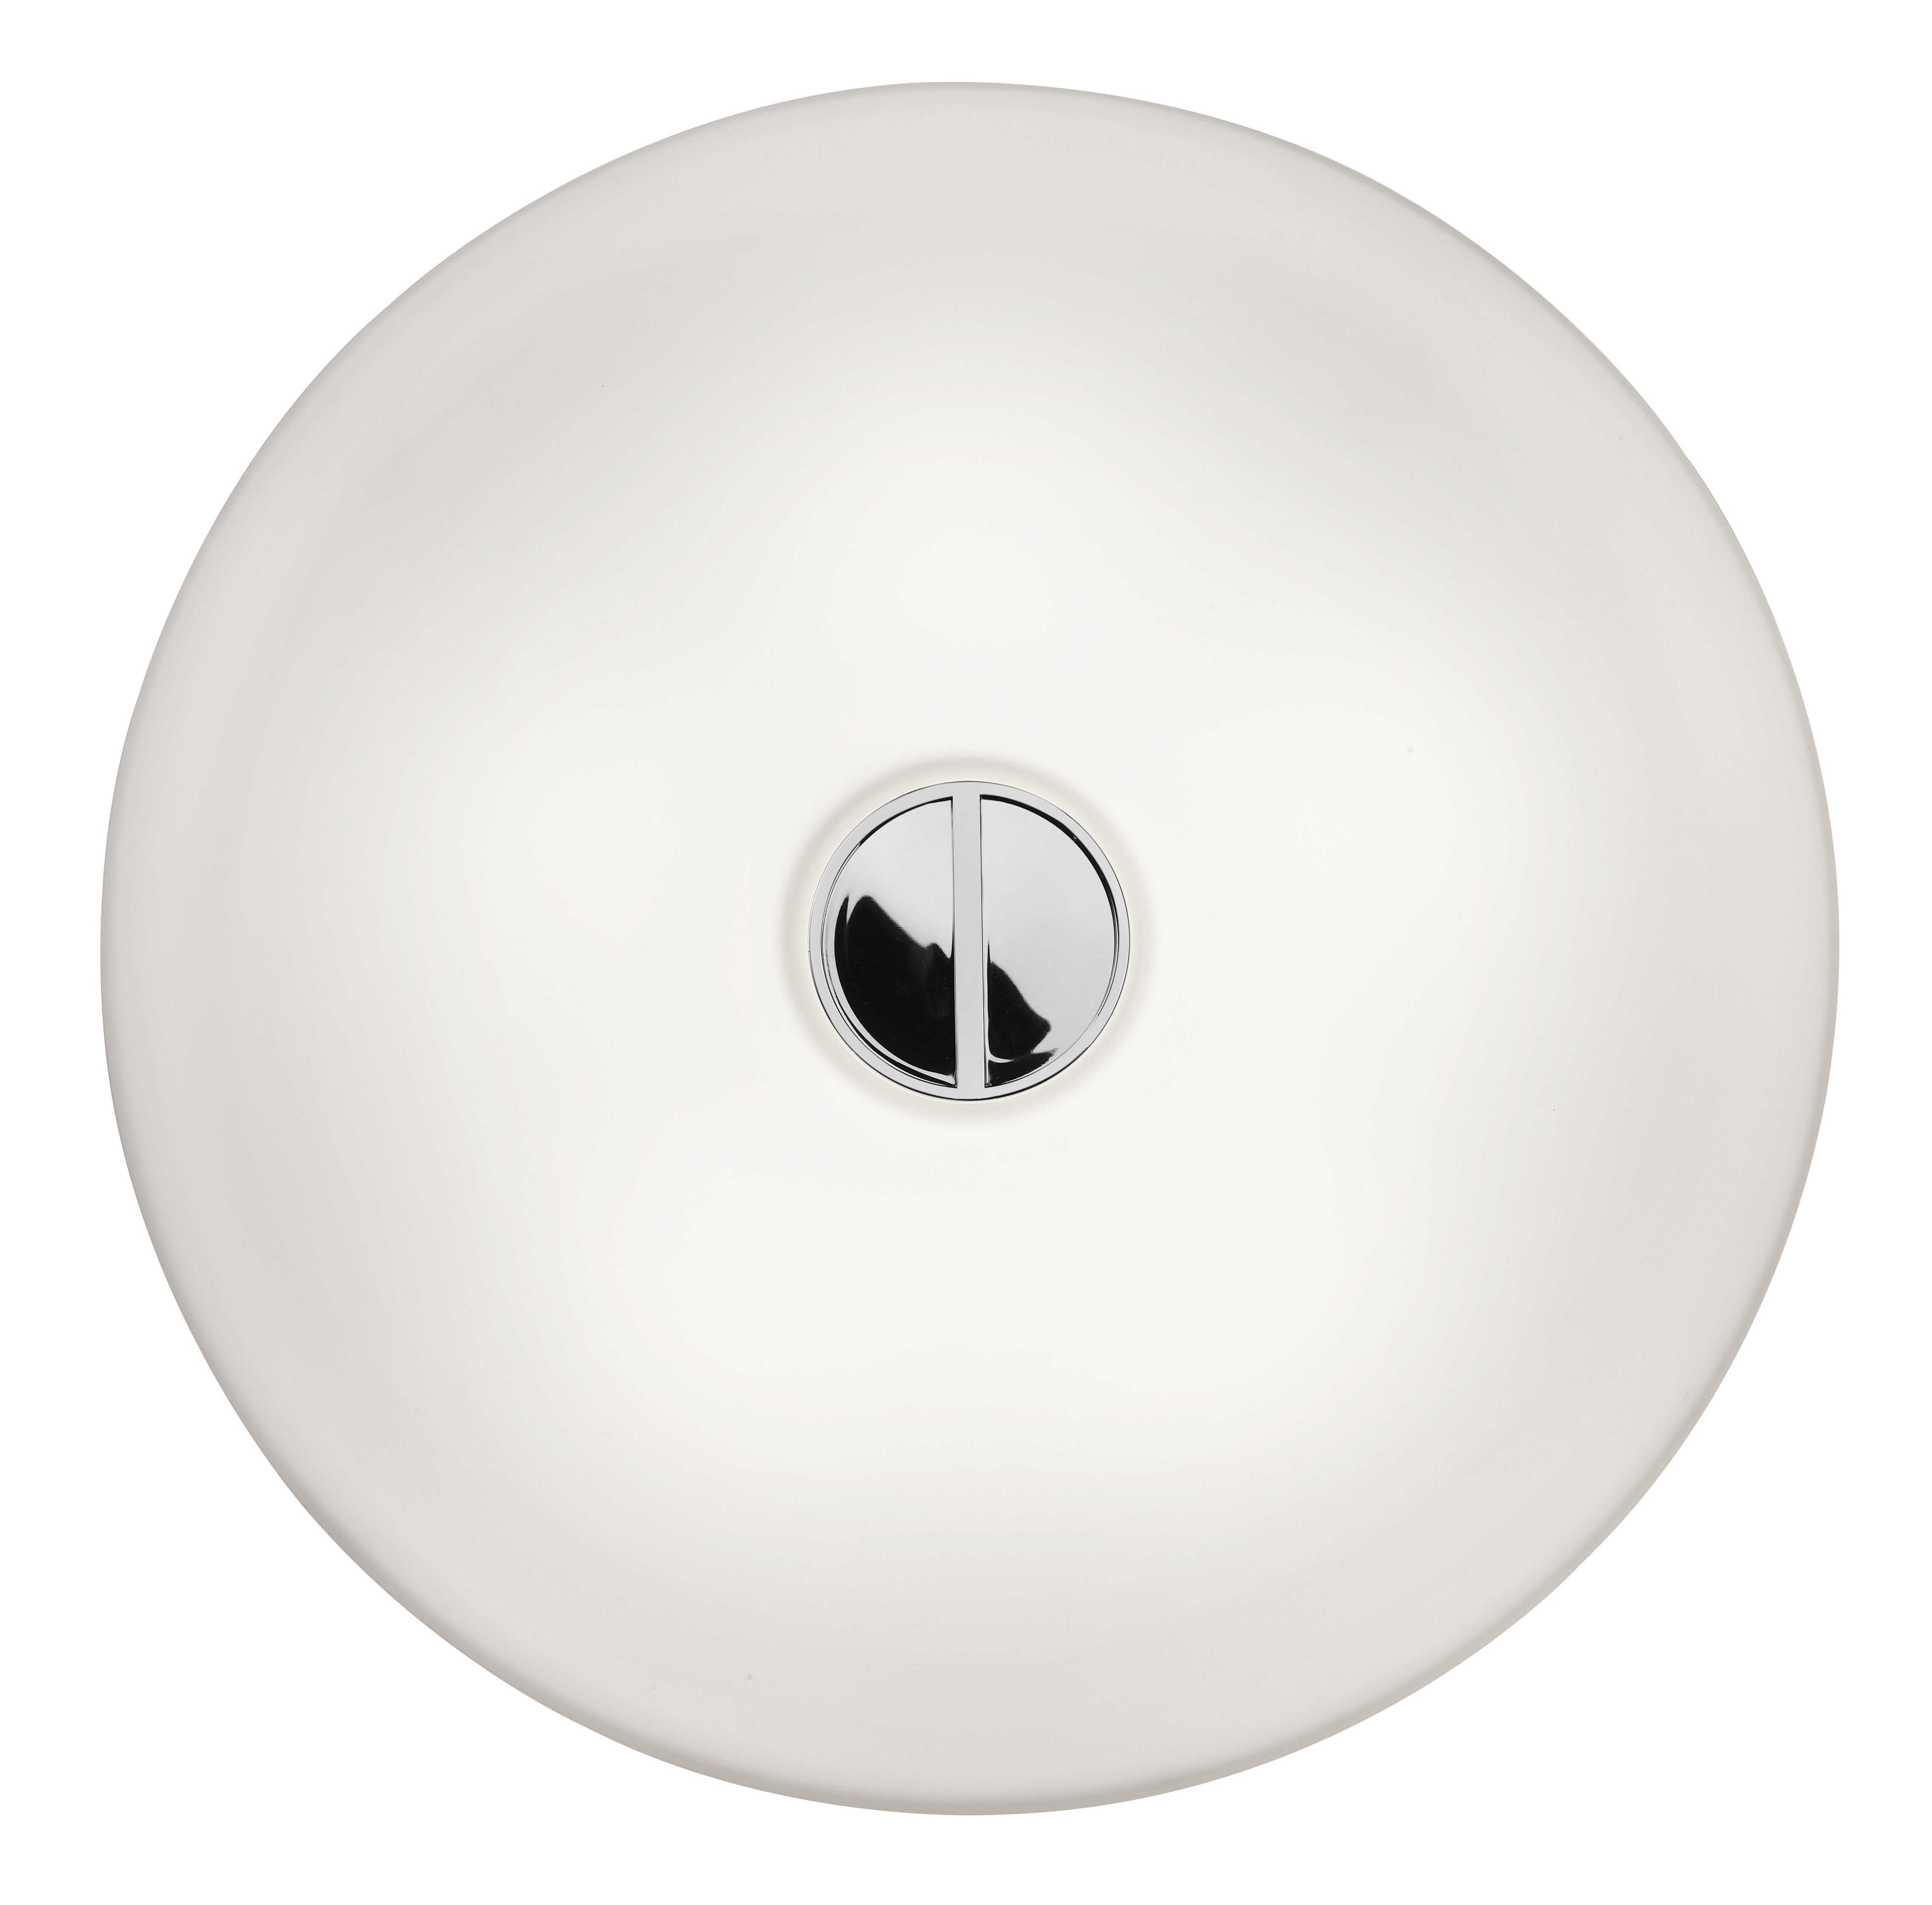 Lighting - Wall Lights - Mini Button Outdoor wall light by Flos - White/White - Glass